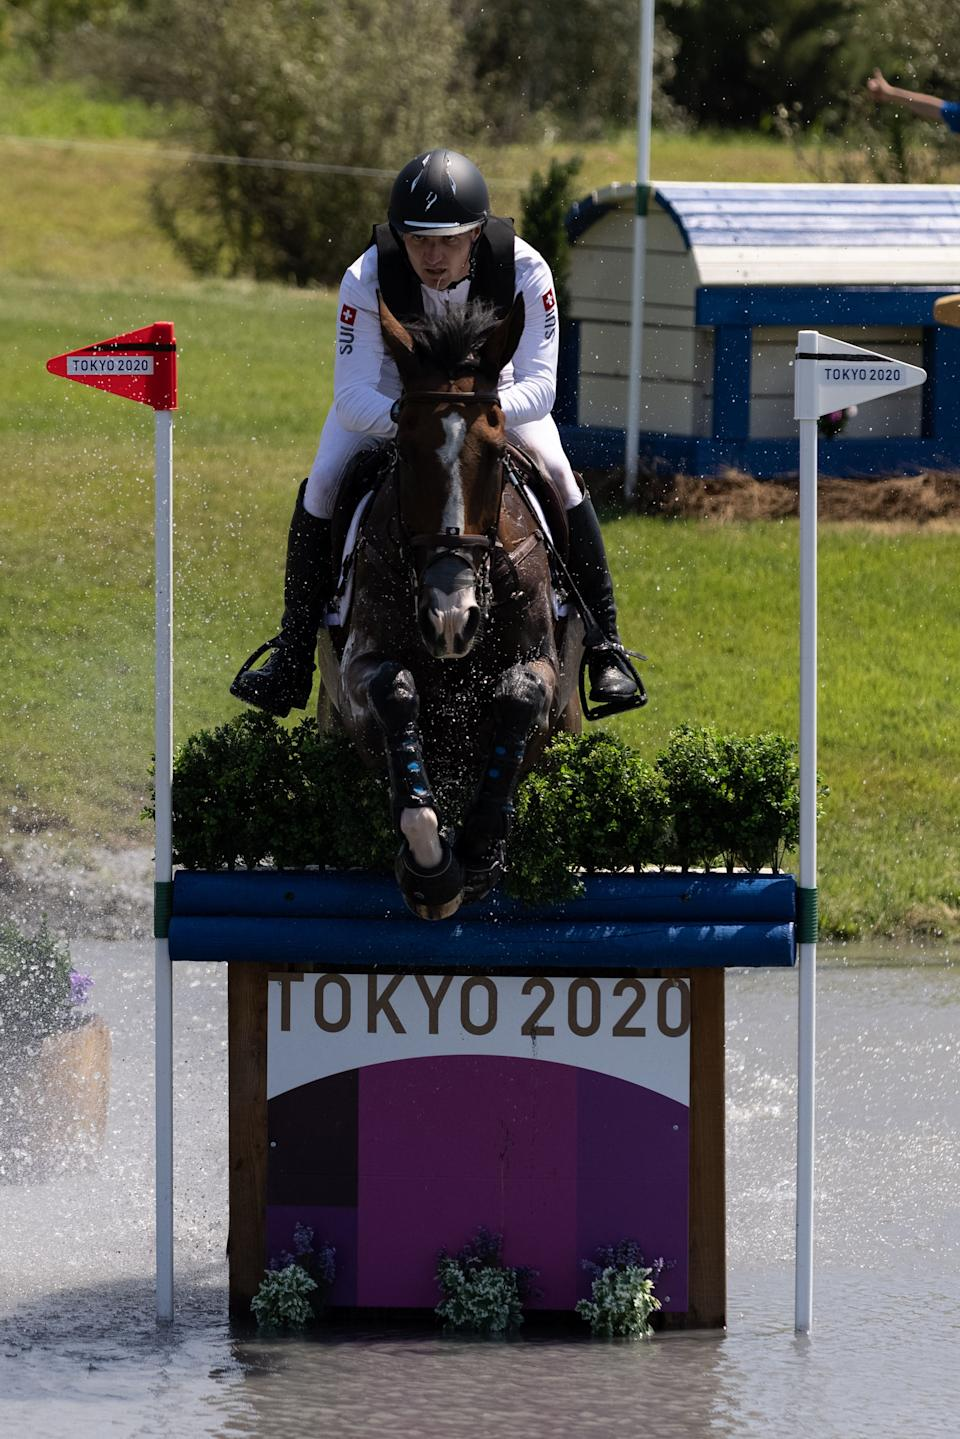 <p>Switzerland's Robin Godel riding Jet Set competes in the equestrian's eventing team and individual cross country during the Tokyo 2020 Olympic Games at the Sea Forest Cross Country Course in Tokyo on August 1, 2021. (Photo by Yuki IWAMURA / AFP) (Photo by YUKI IWAMURA/AFP via Getty Images)</p>